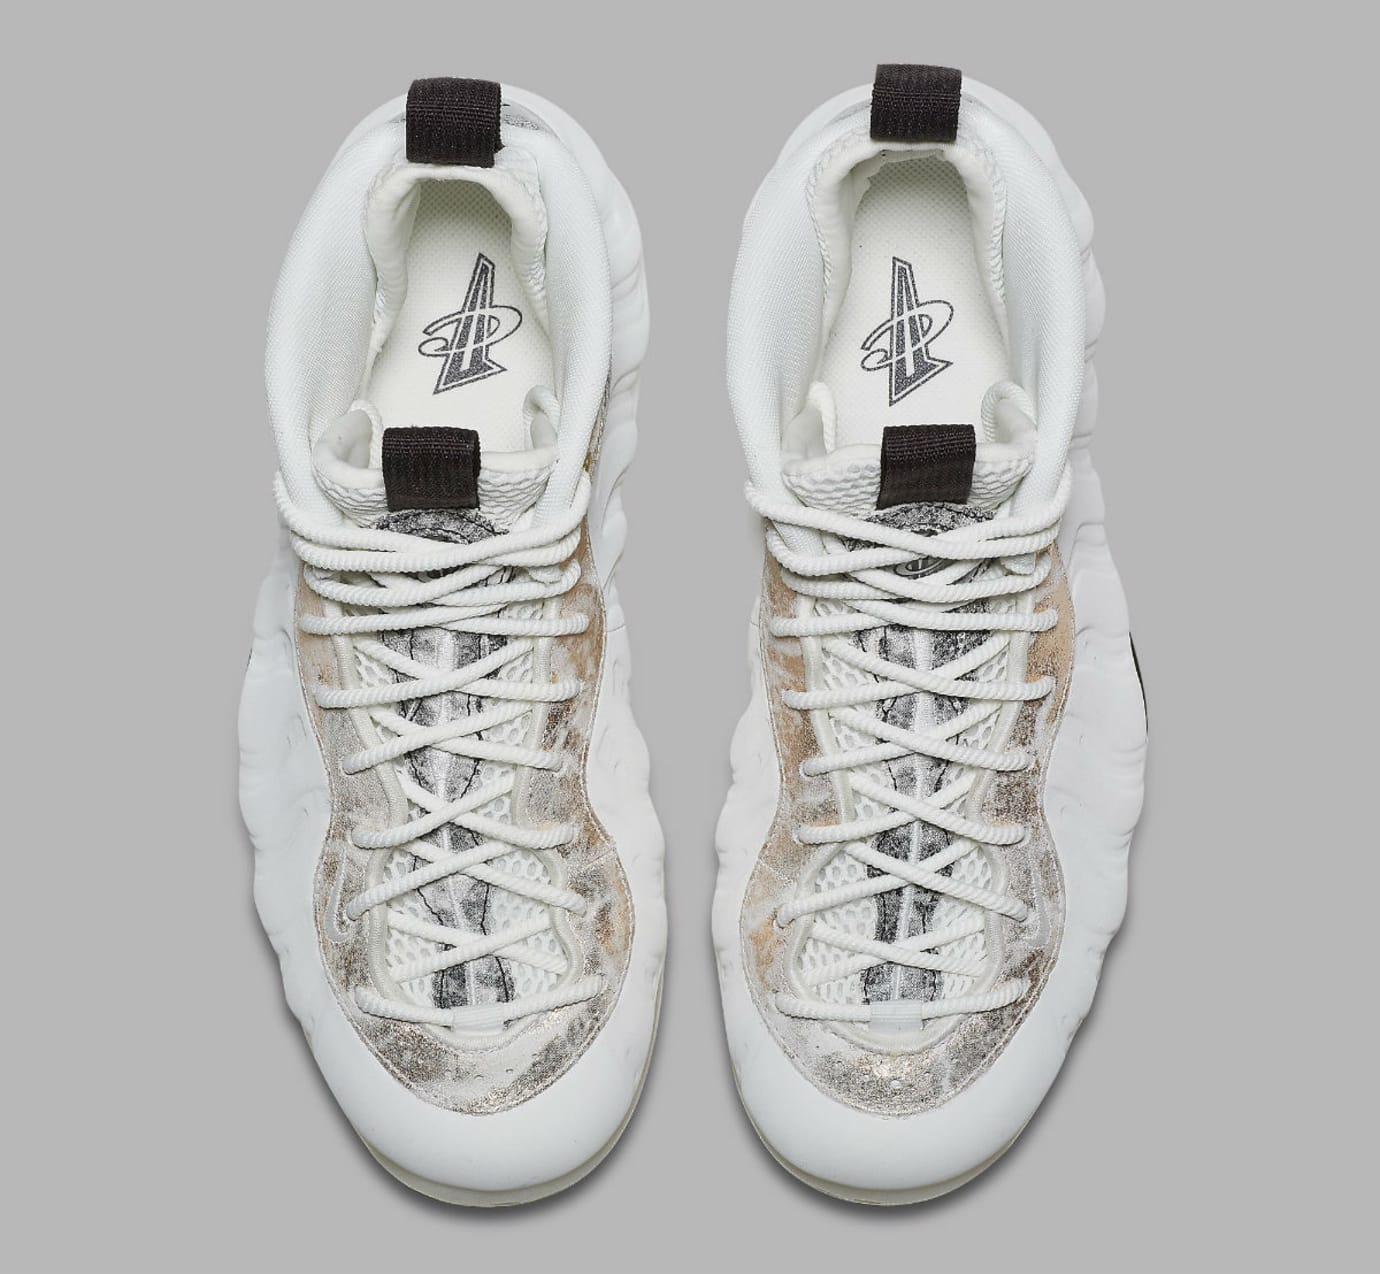 Image via Nike Nike Air Foamposite One Women s Summit White Oil Grey  Rainforest Release Date AA3963-101 Top a7de418d0d